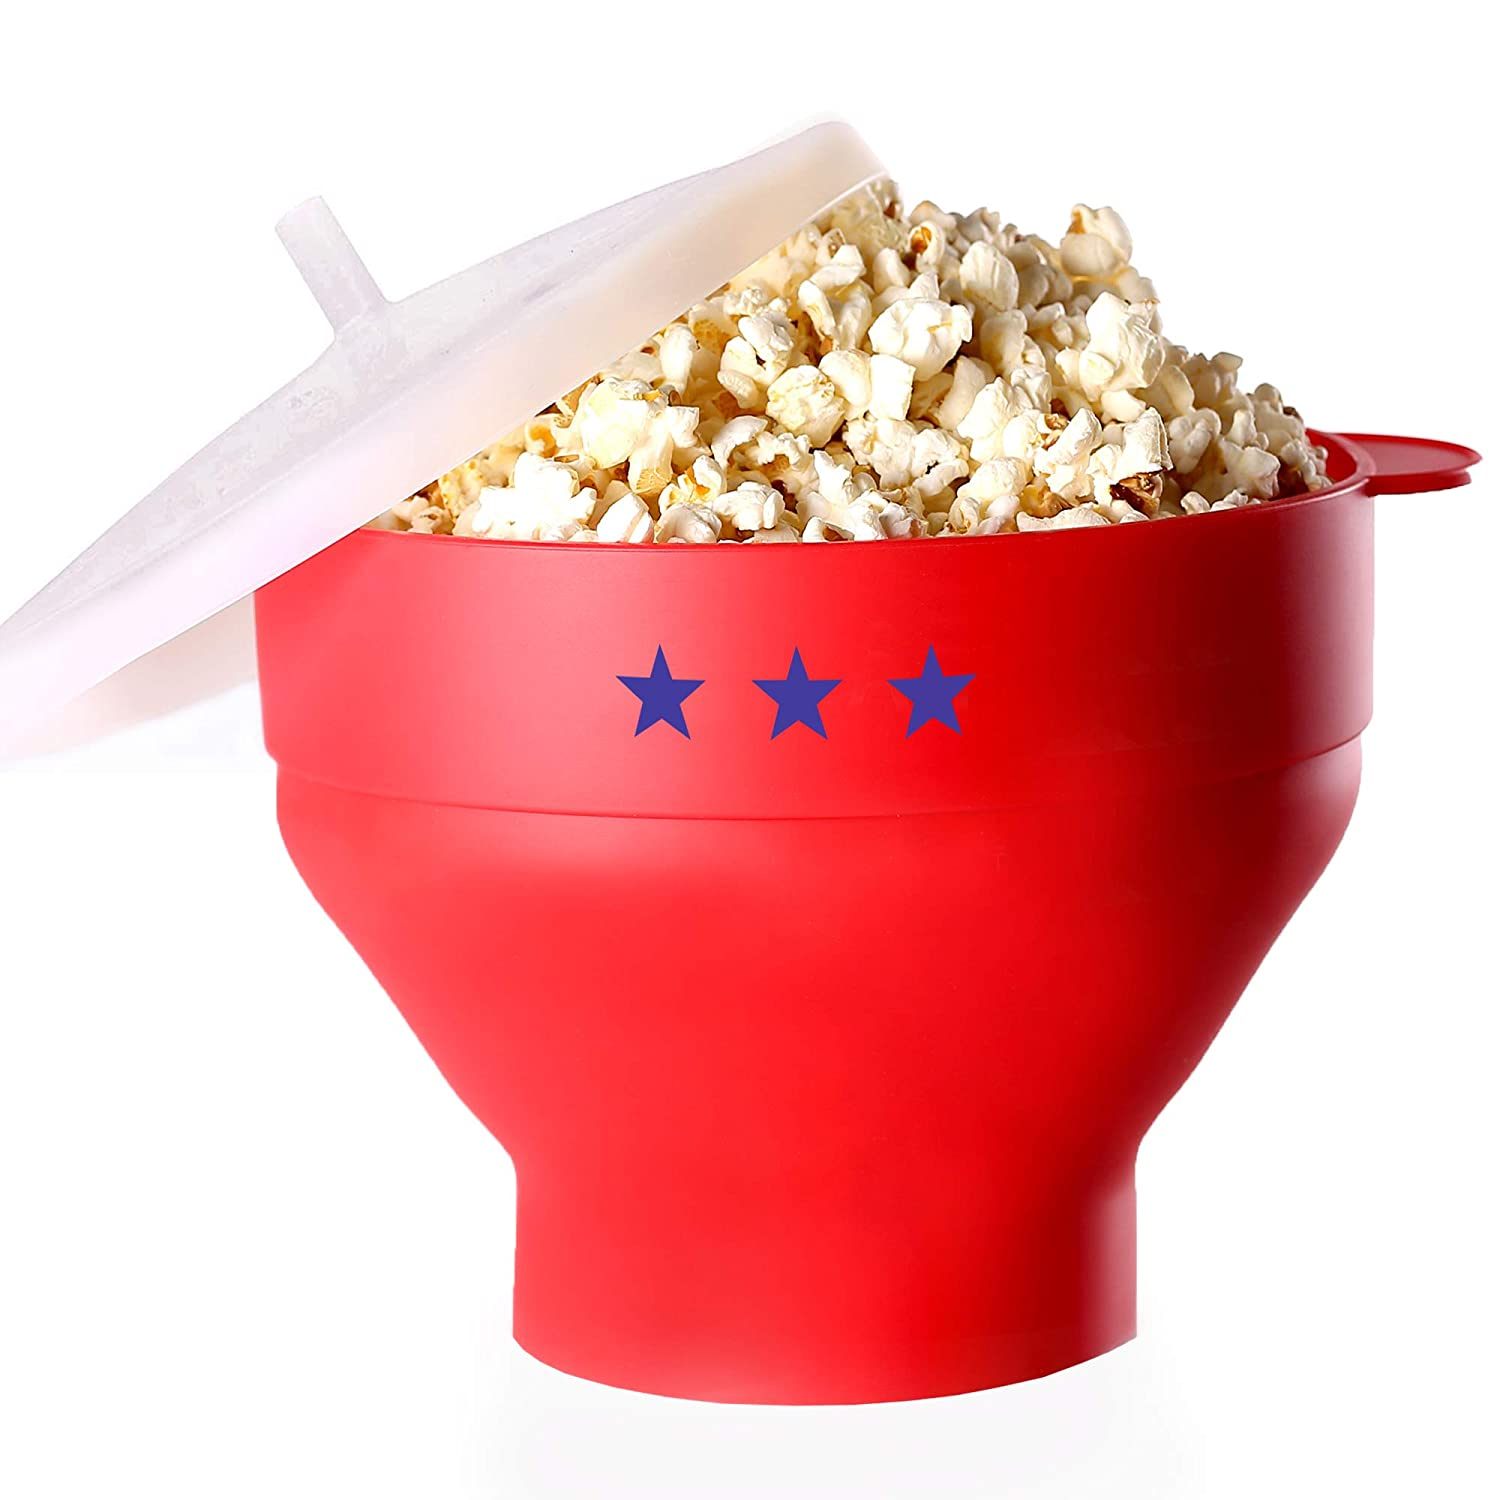 Microwave Popcorn Popper – Silicone BPA Free - The Original Pop Corn Hot Air Maker Collapsible Space Saving Bowl With Lid And Handles For Healthy Oil-Free Corn Kernels – Dishwasher Safe With Measurement Markings - FDA approved